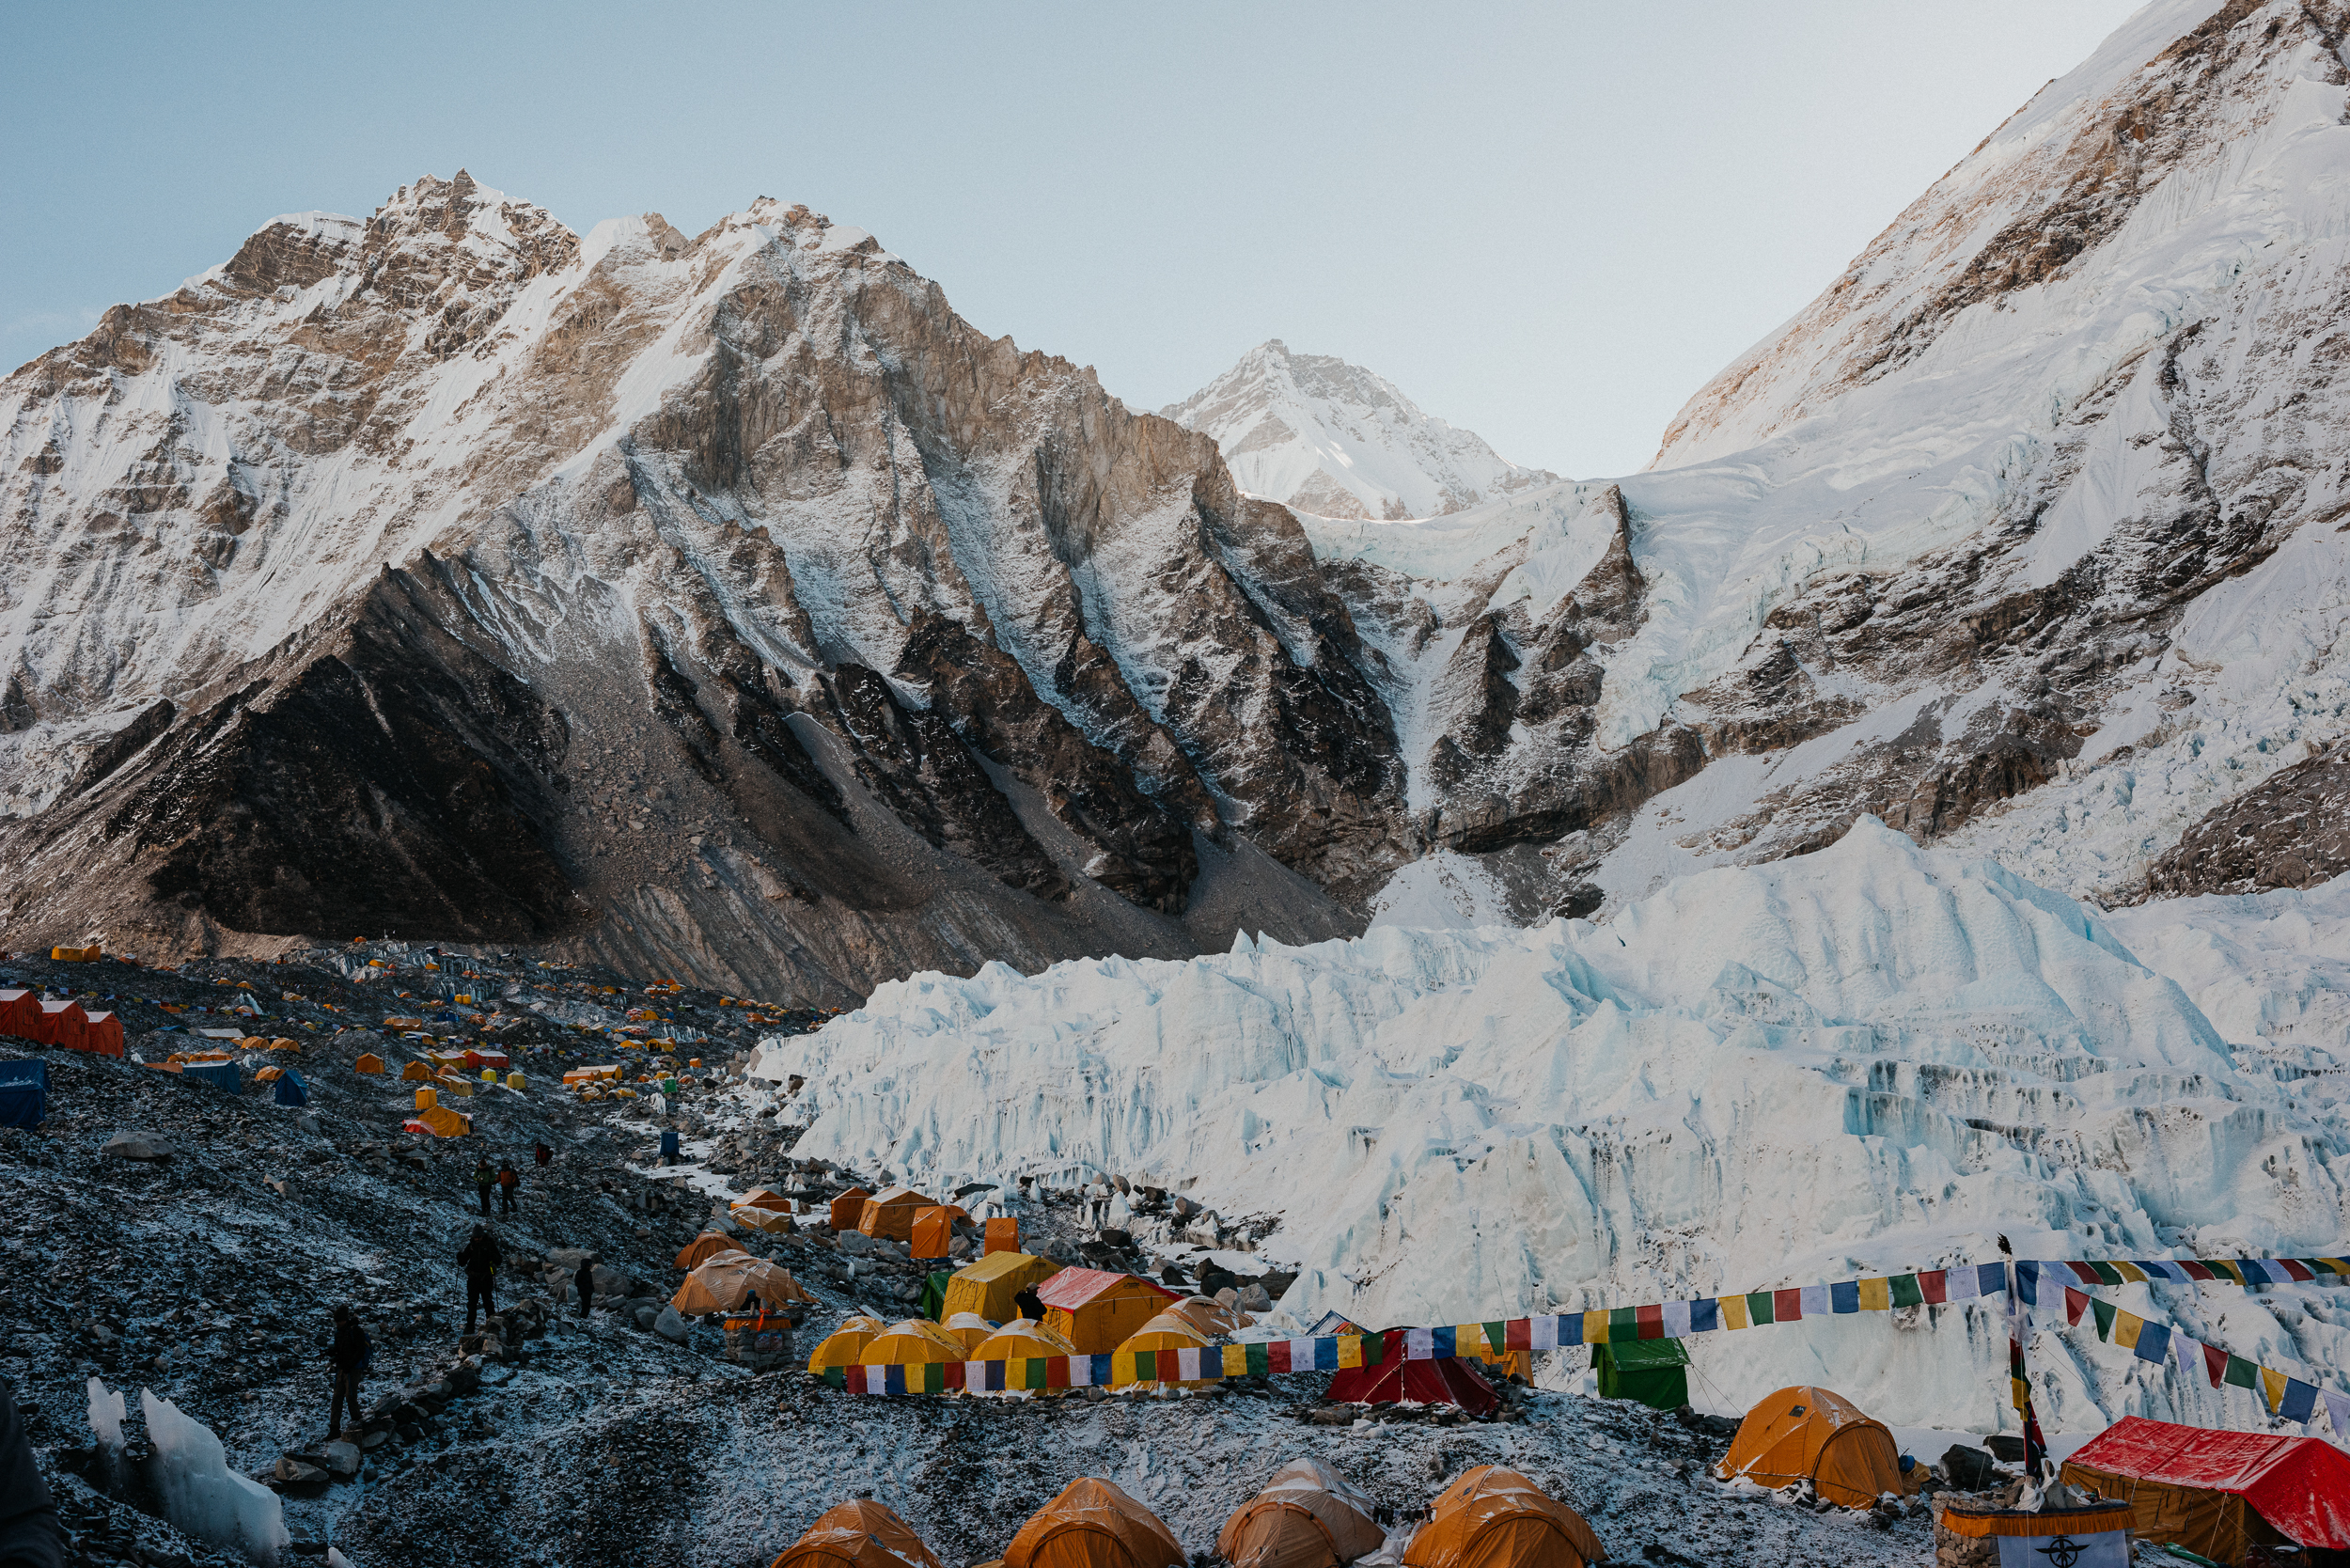 Nepal_EverestBaseCamp_2019_TaraShupe_Photography_DSC_4381.jpg